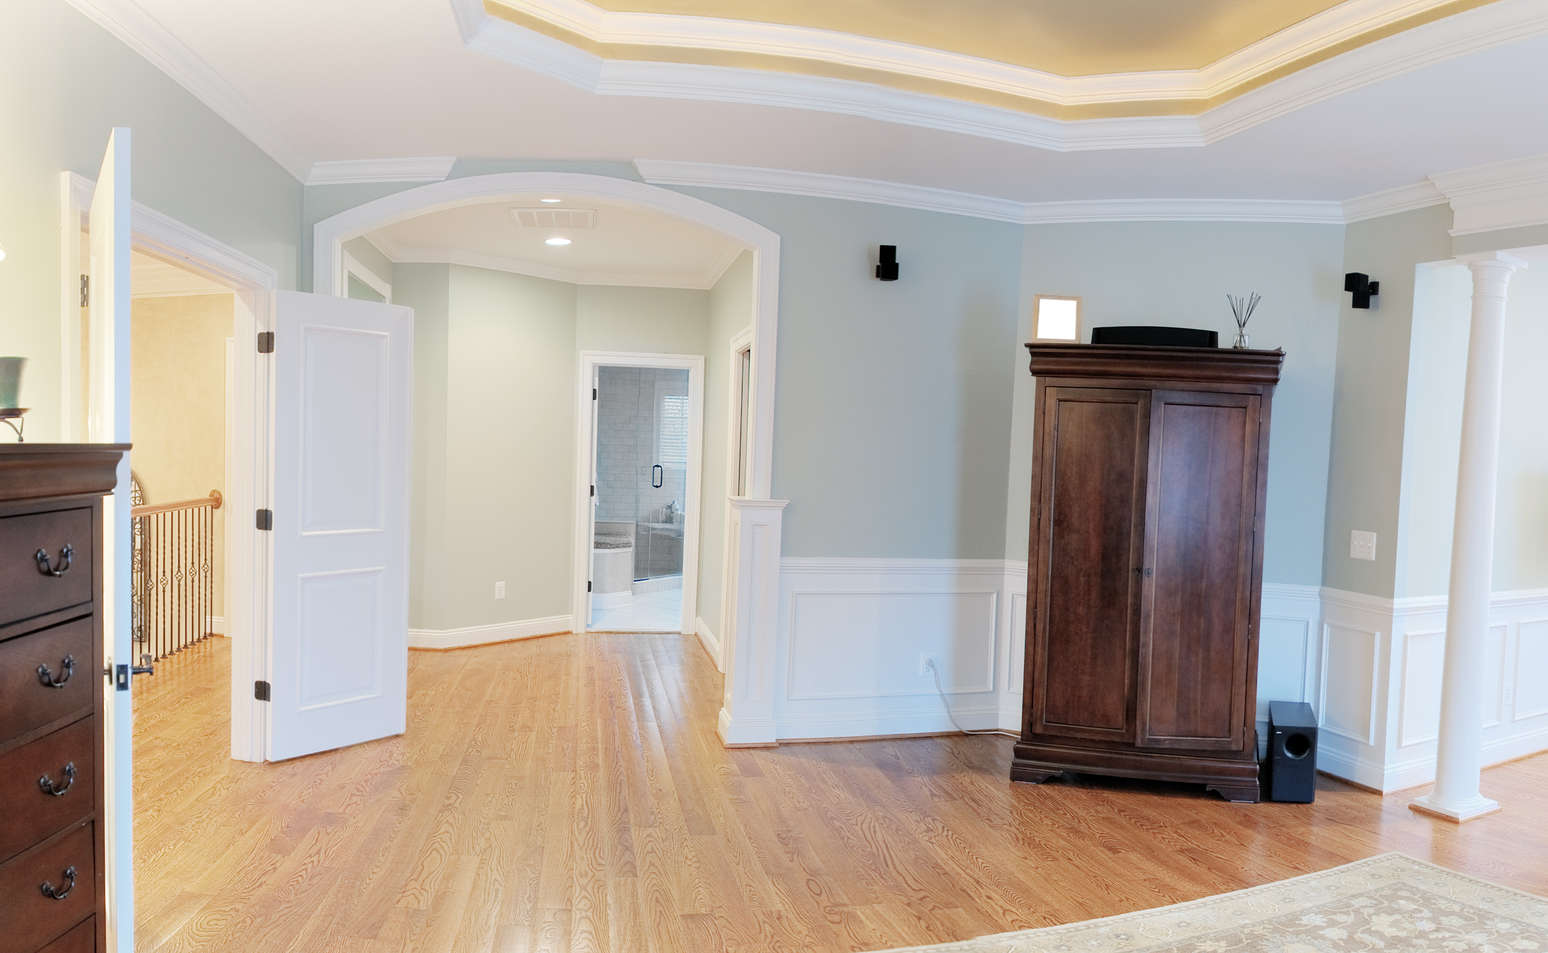 Cornice and Coving